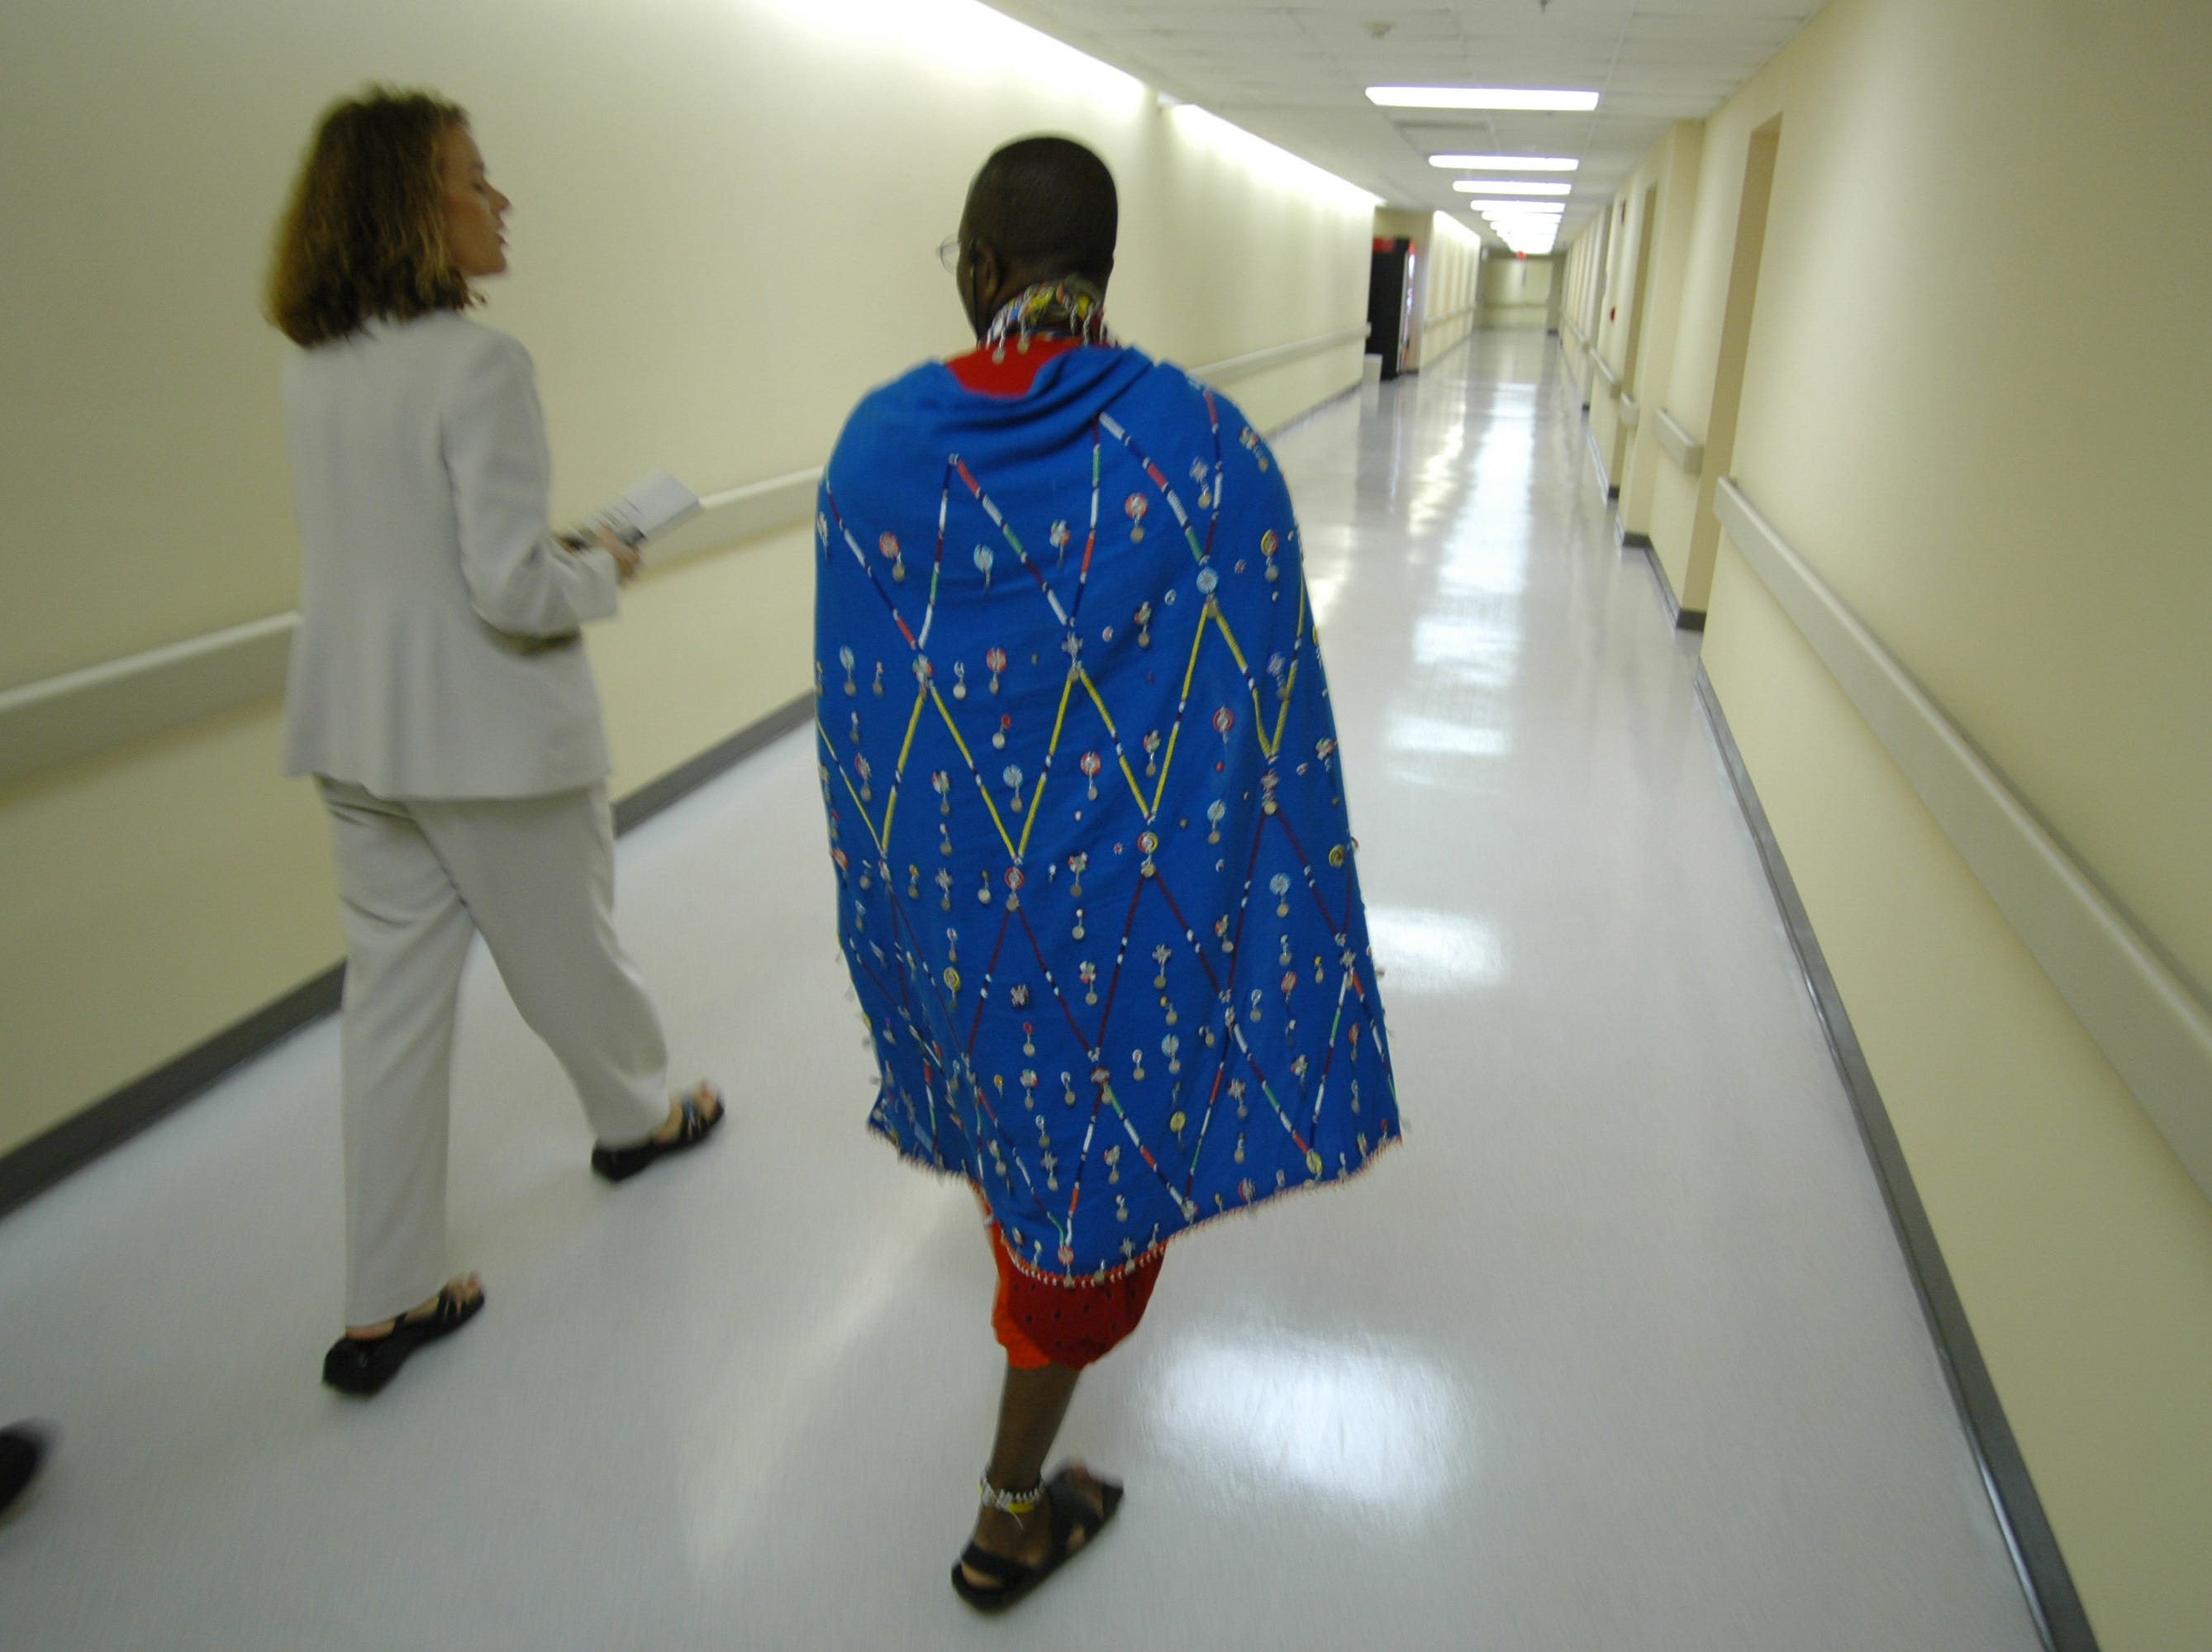 Dressed in his traditional clothing, Josiah Muesha, a member of the Maasai community in Kenya, right, walks with Linda Cox-Leija of St. Mary's Hospital on his tour of the hospital in North Knoxville Tuesday afternoon. 10/18/2005